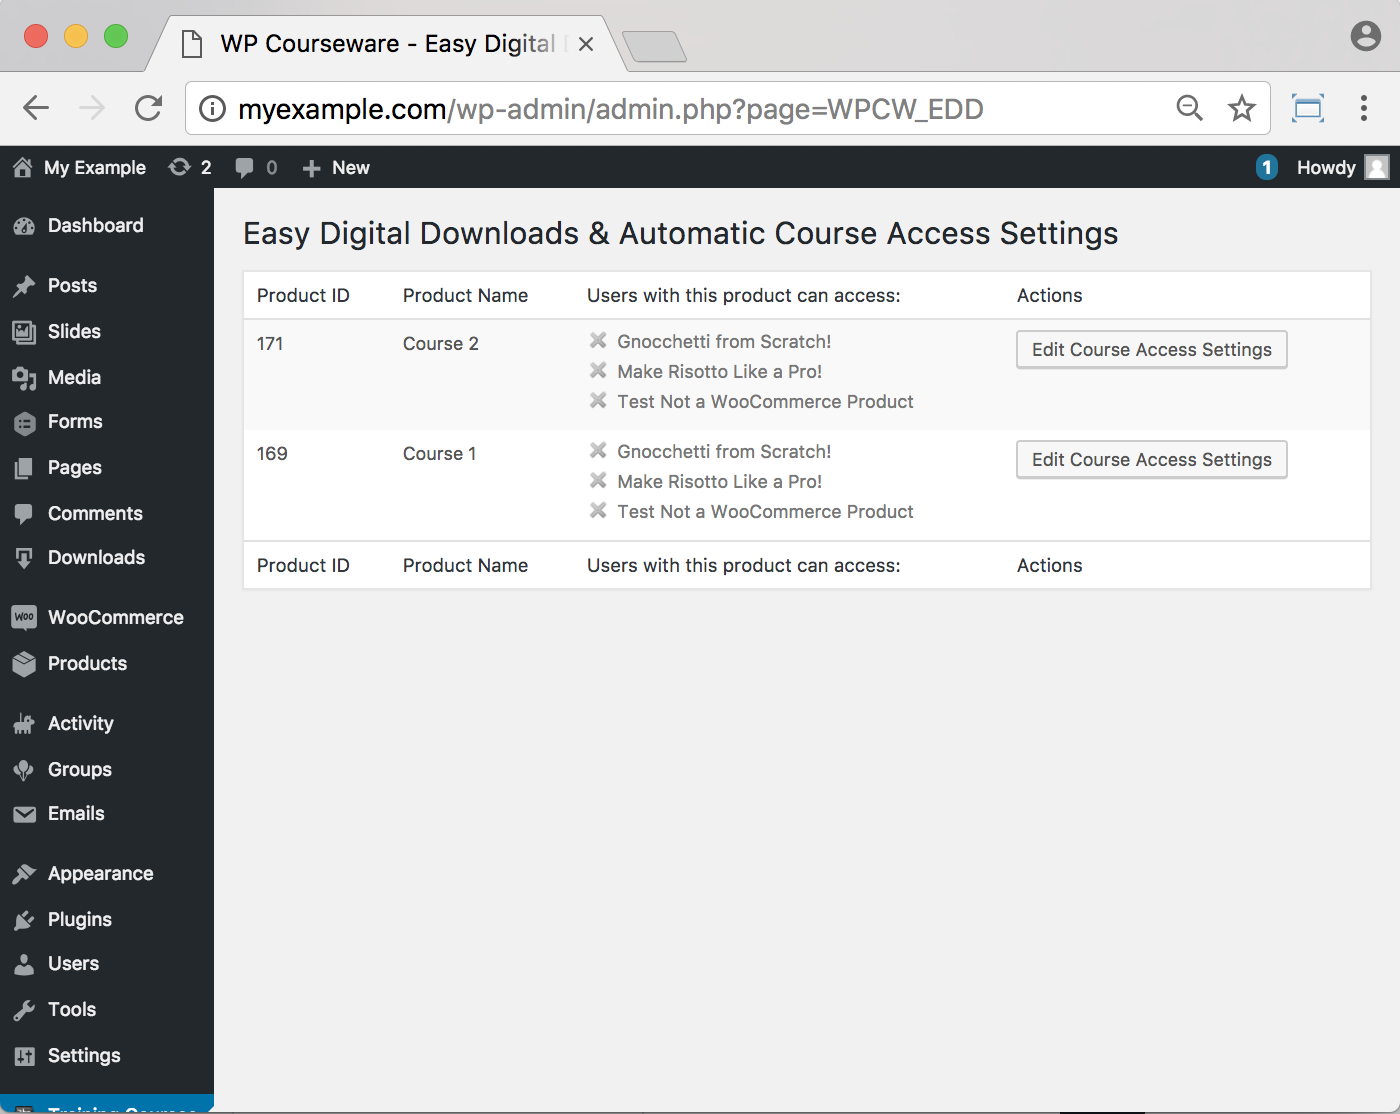 WP Courseware Easy Digital Downloads Add-On- Backend Assigning Course to Download 1